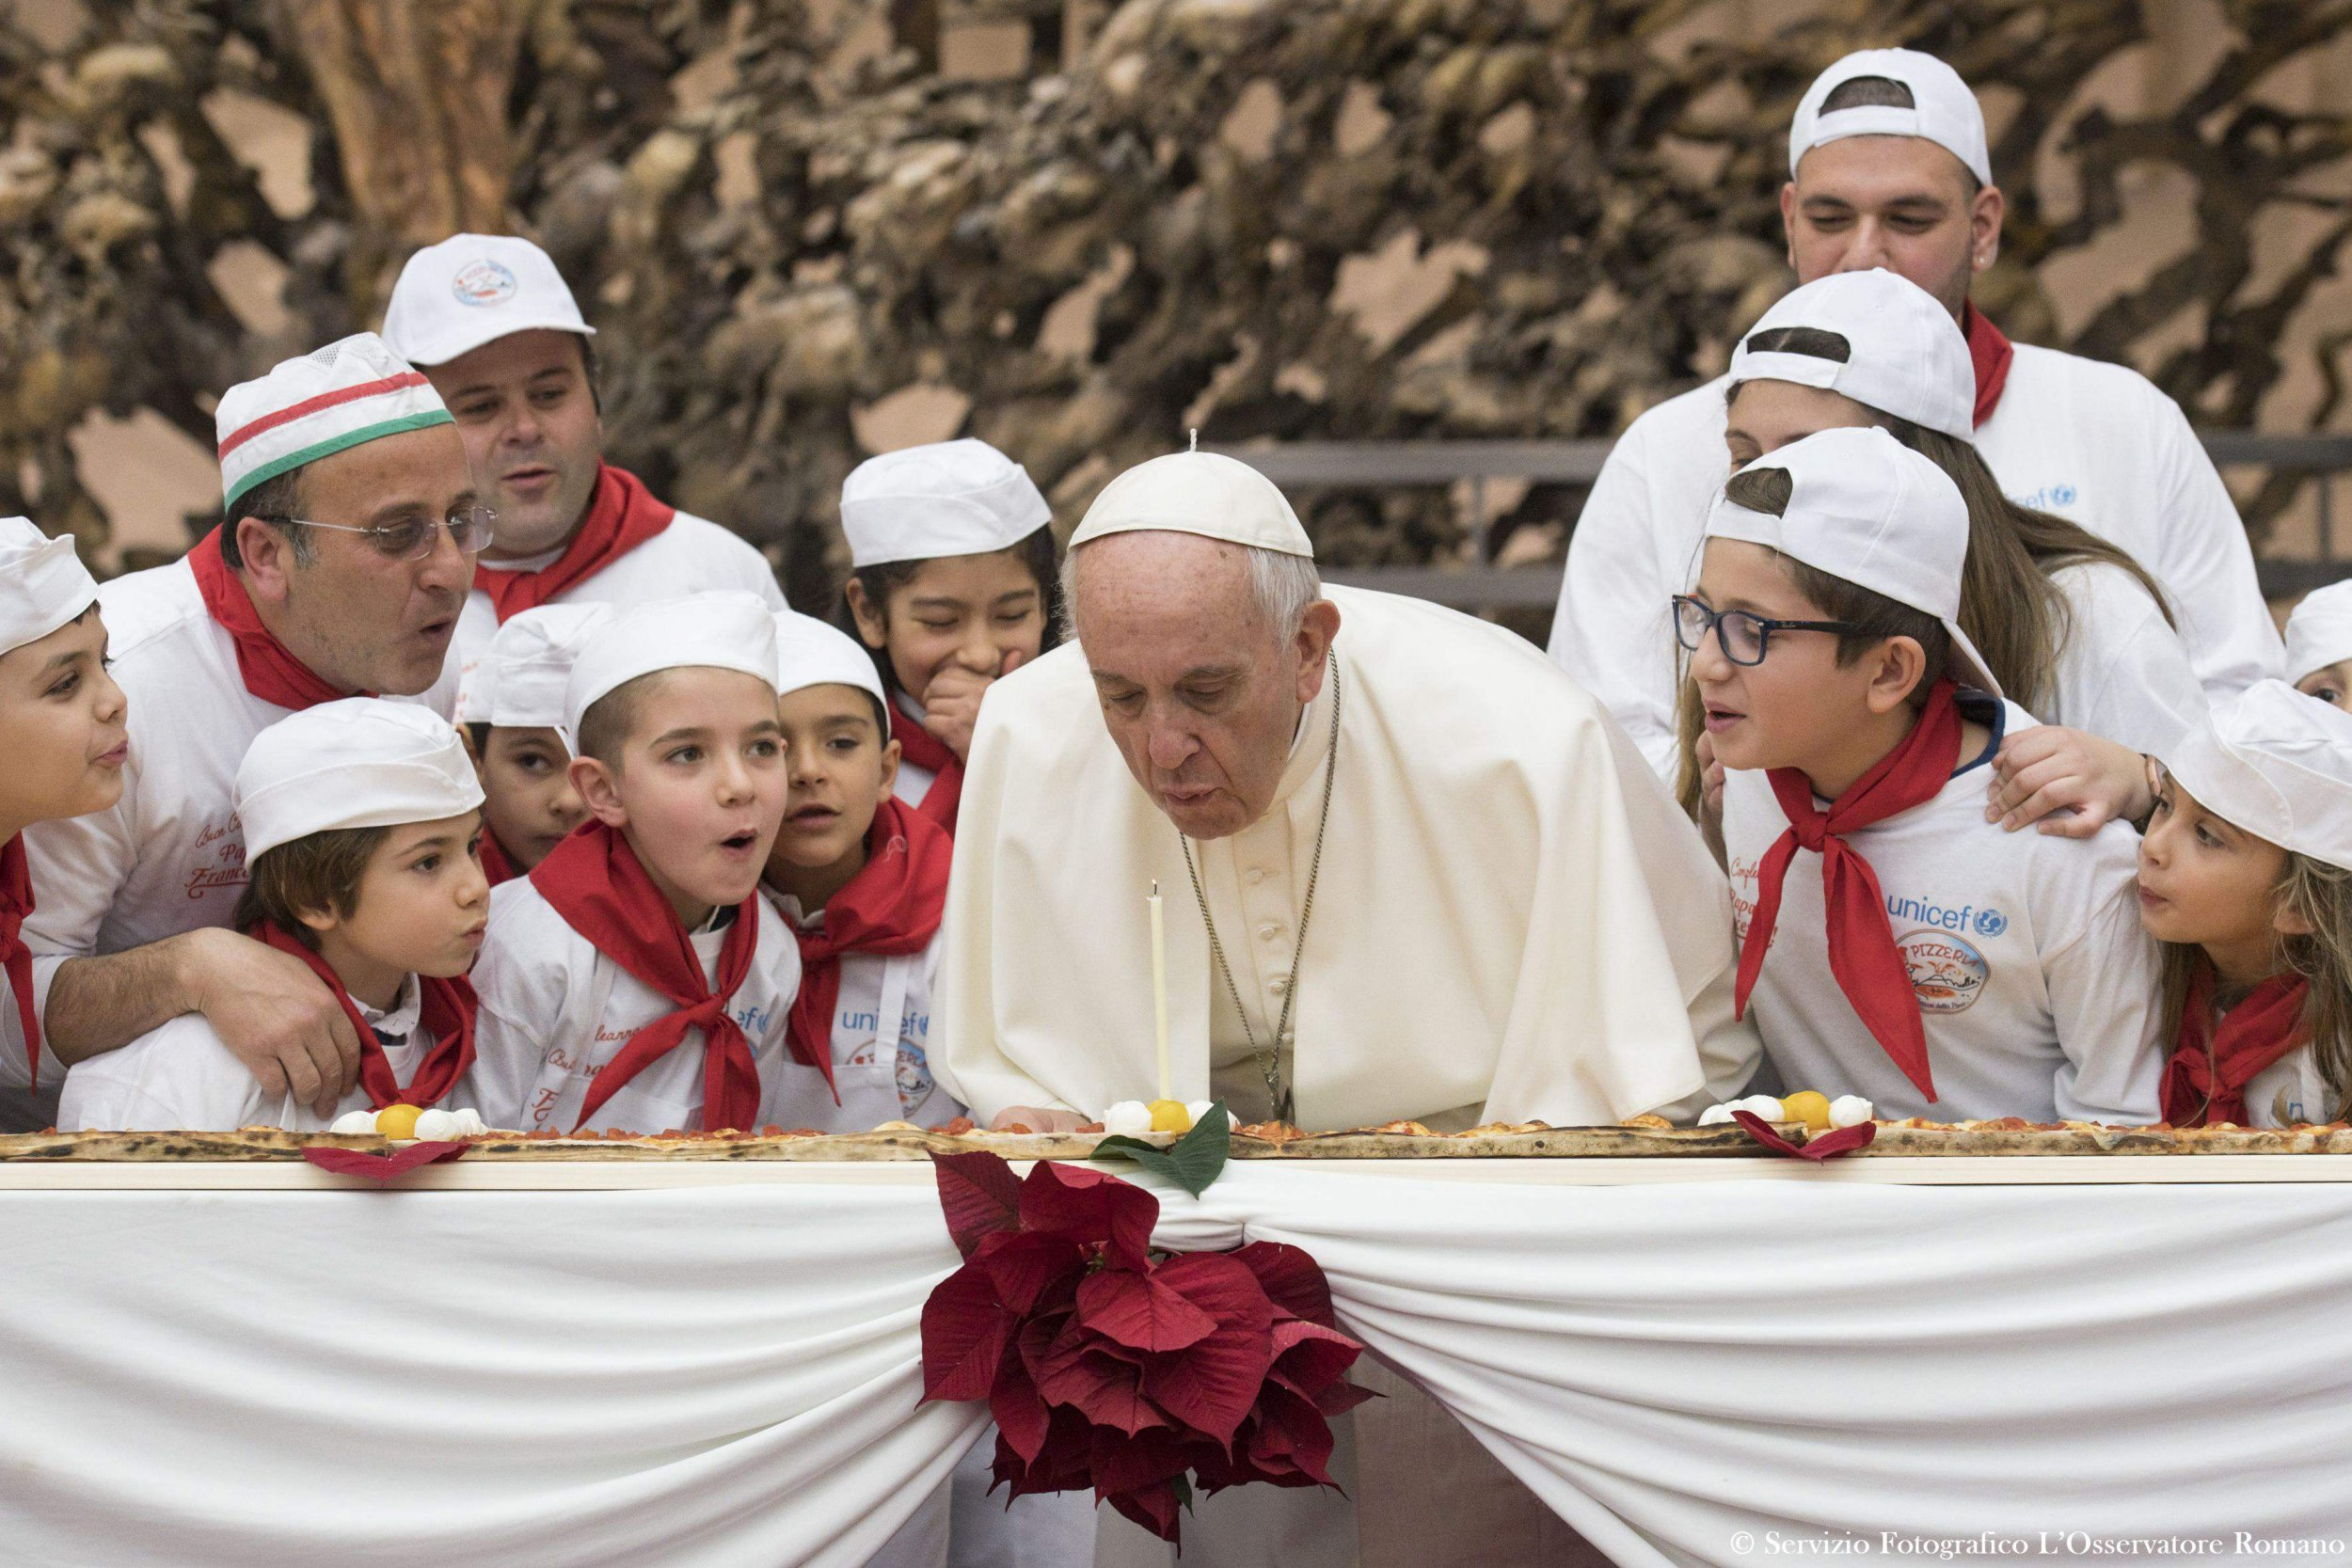 Pope Francis blows out birthday candle on massive pizza